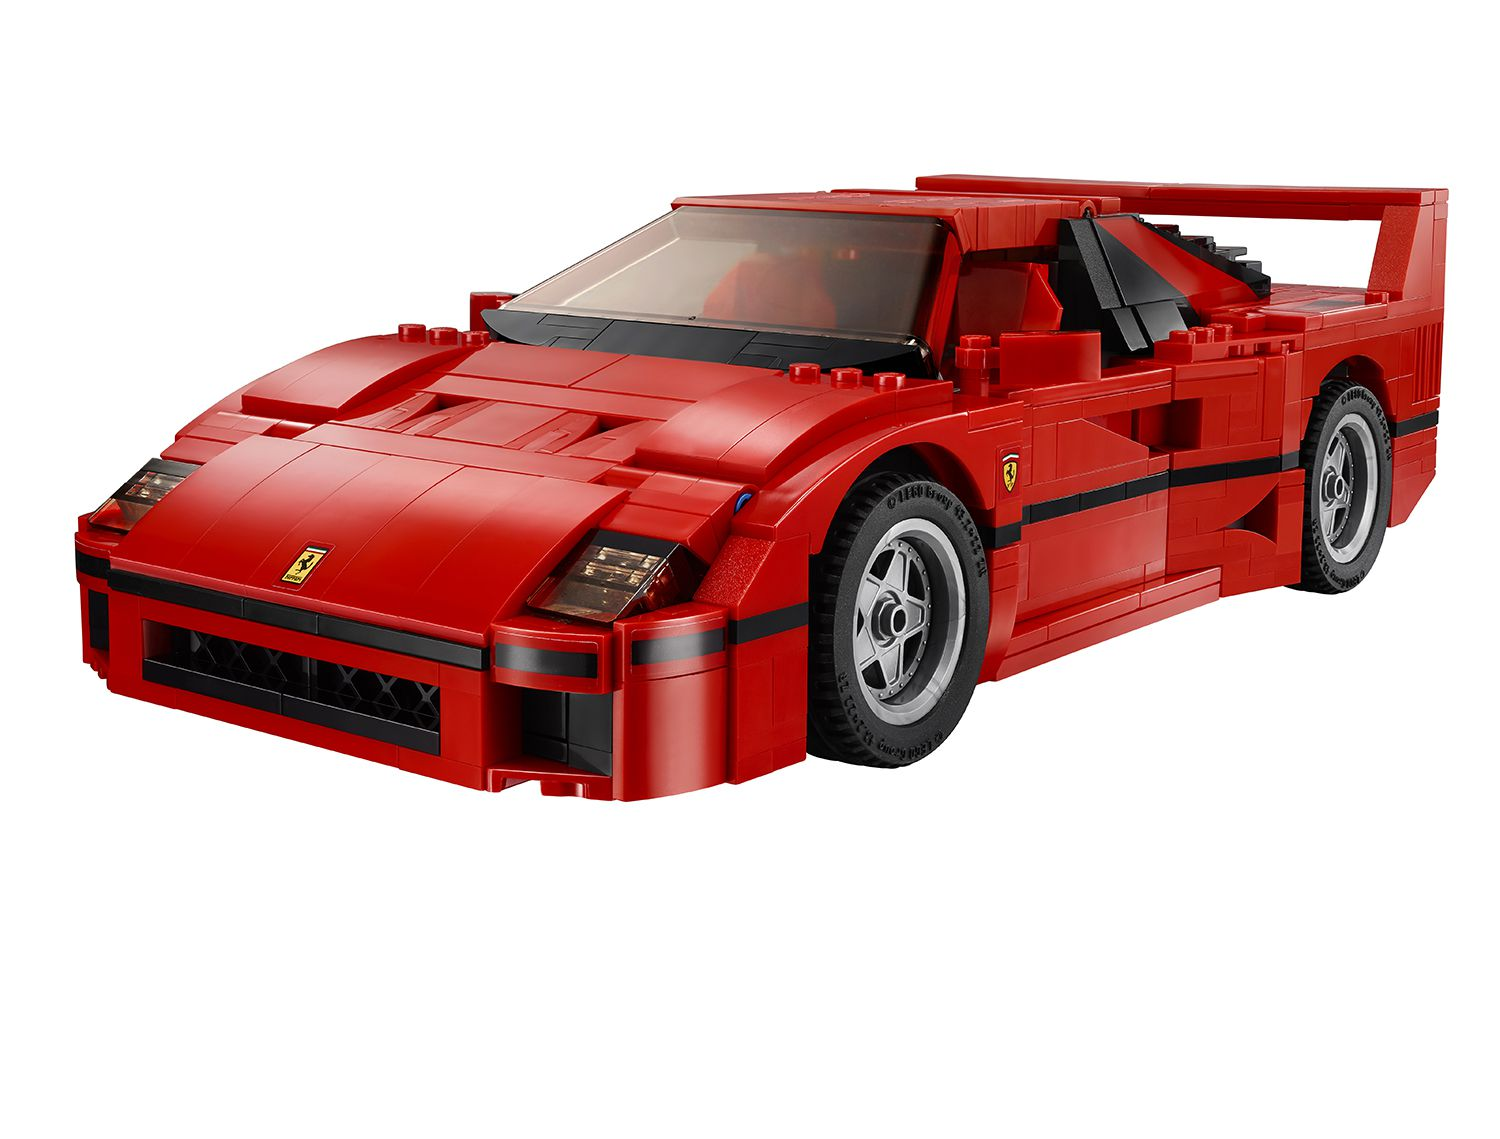 LEGO Advanced Models 10248 Ferrari F40 10248-1_img06.jpg